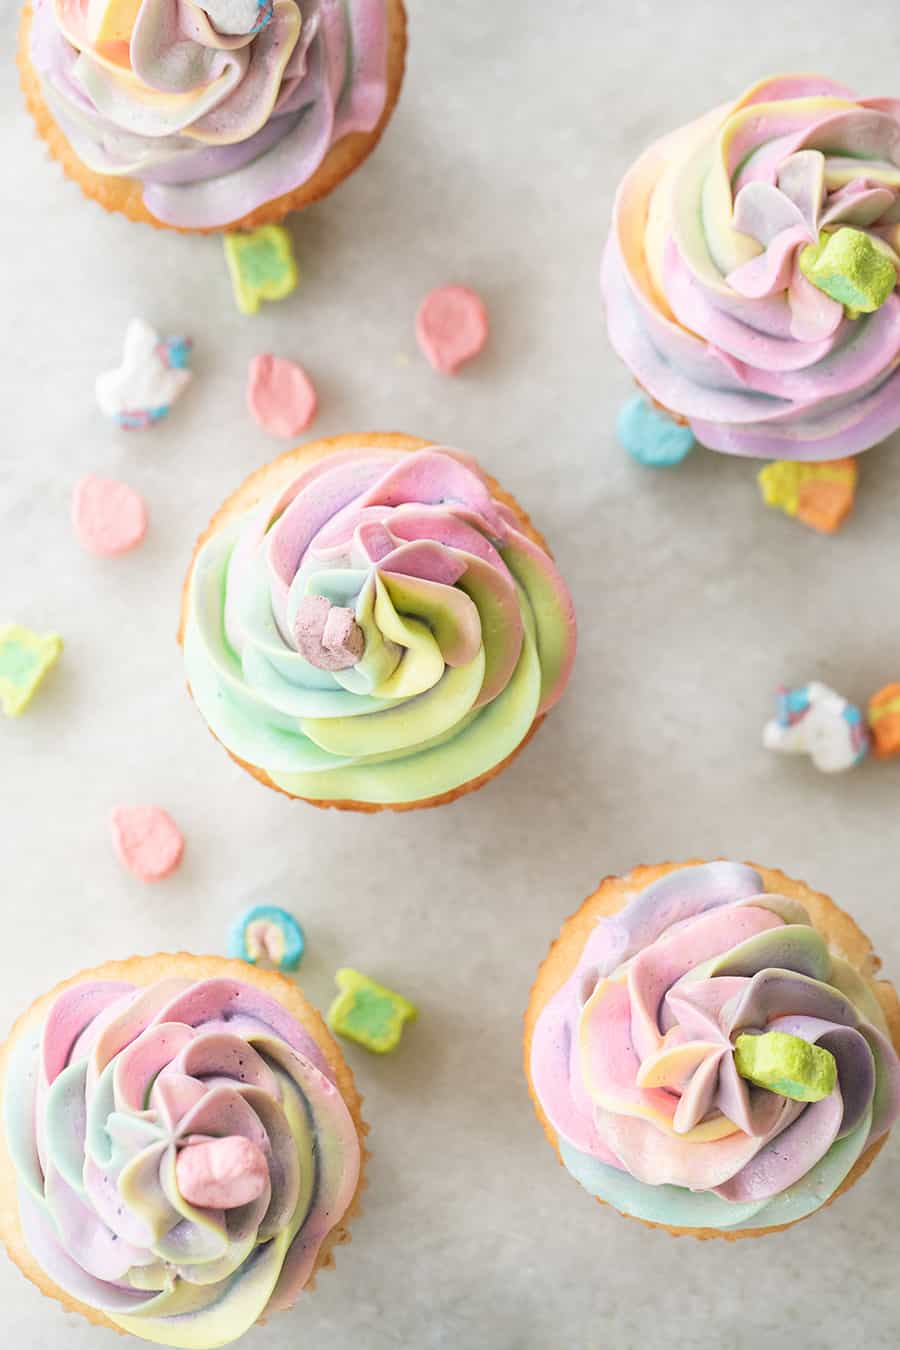 Rainbow buttercream frosting on Lucky Charms Cupcakes for Saint Patrick's Day.